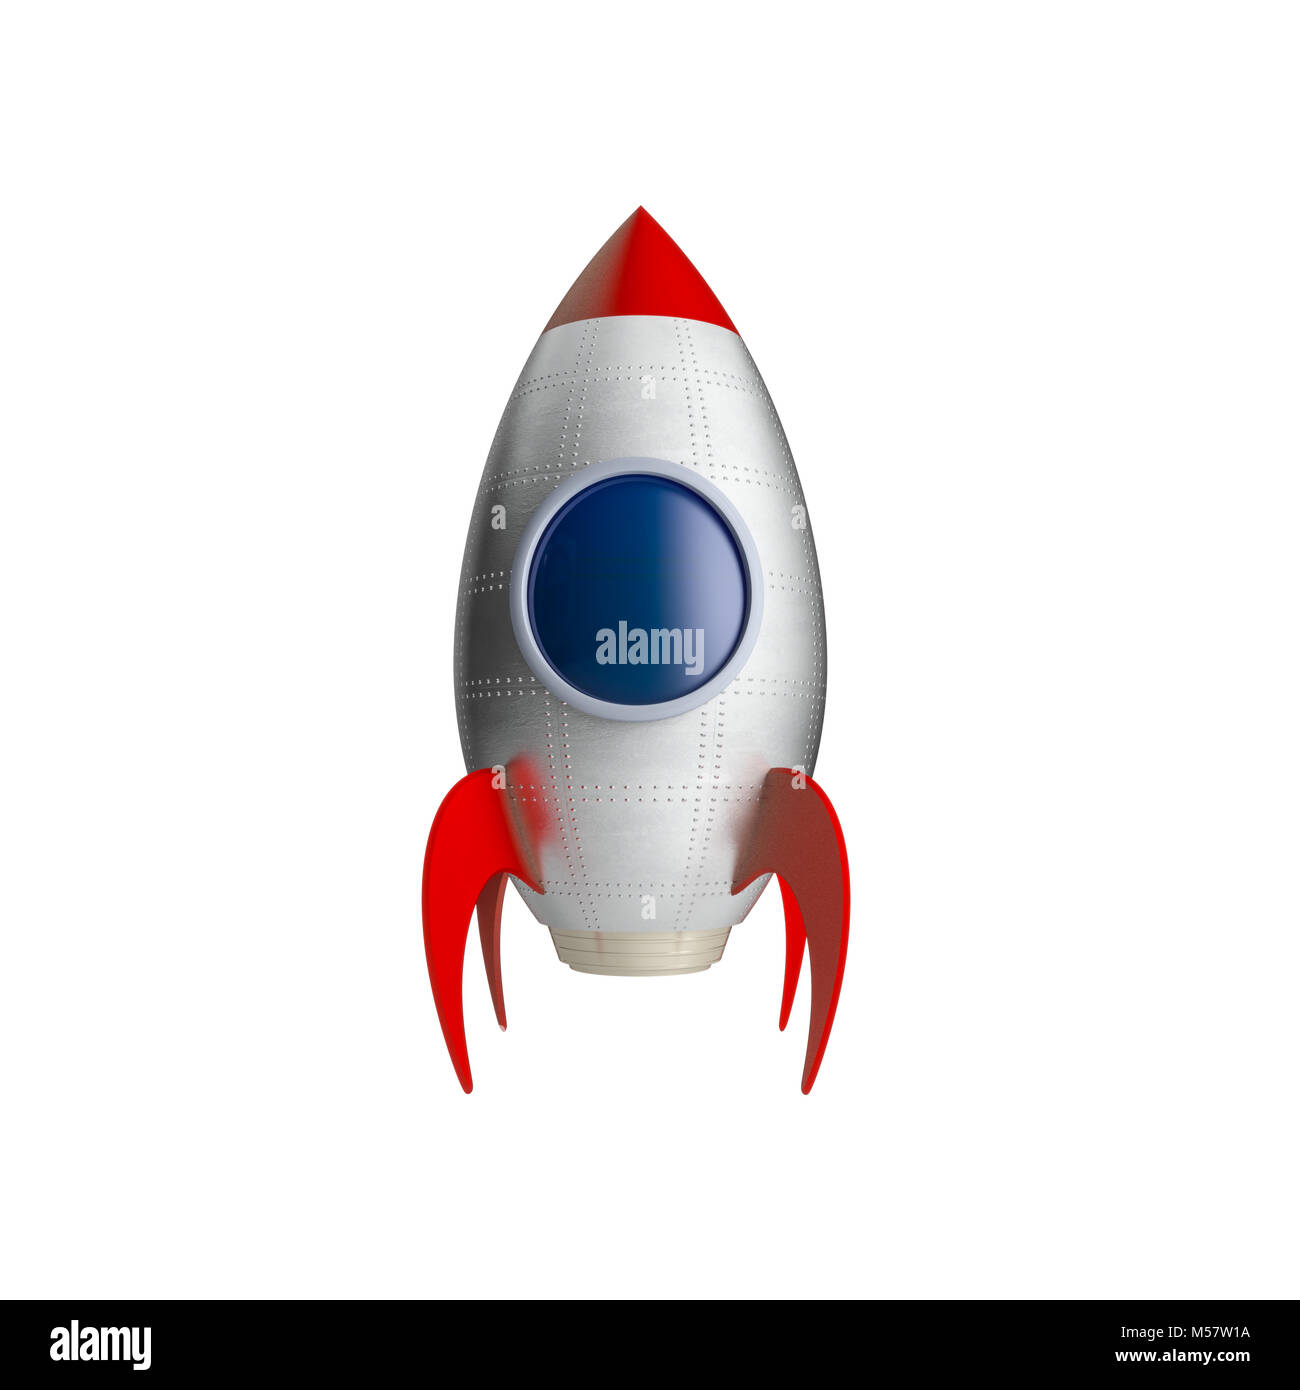 classic toy spaceship isolated on white background 3d rendering image Stock Photo